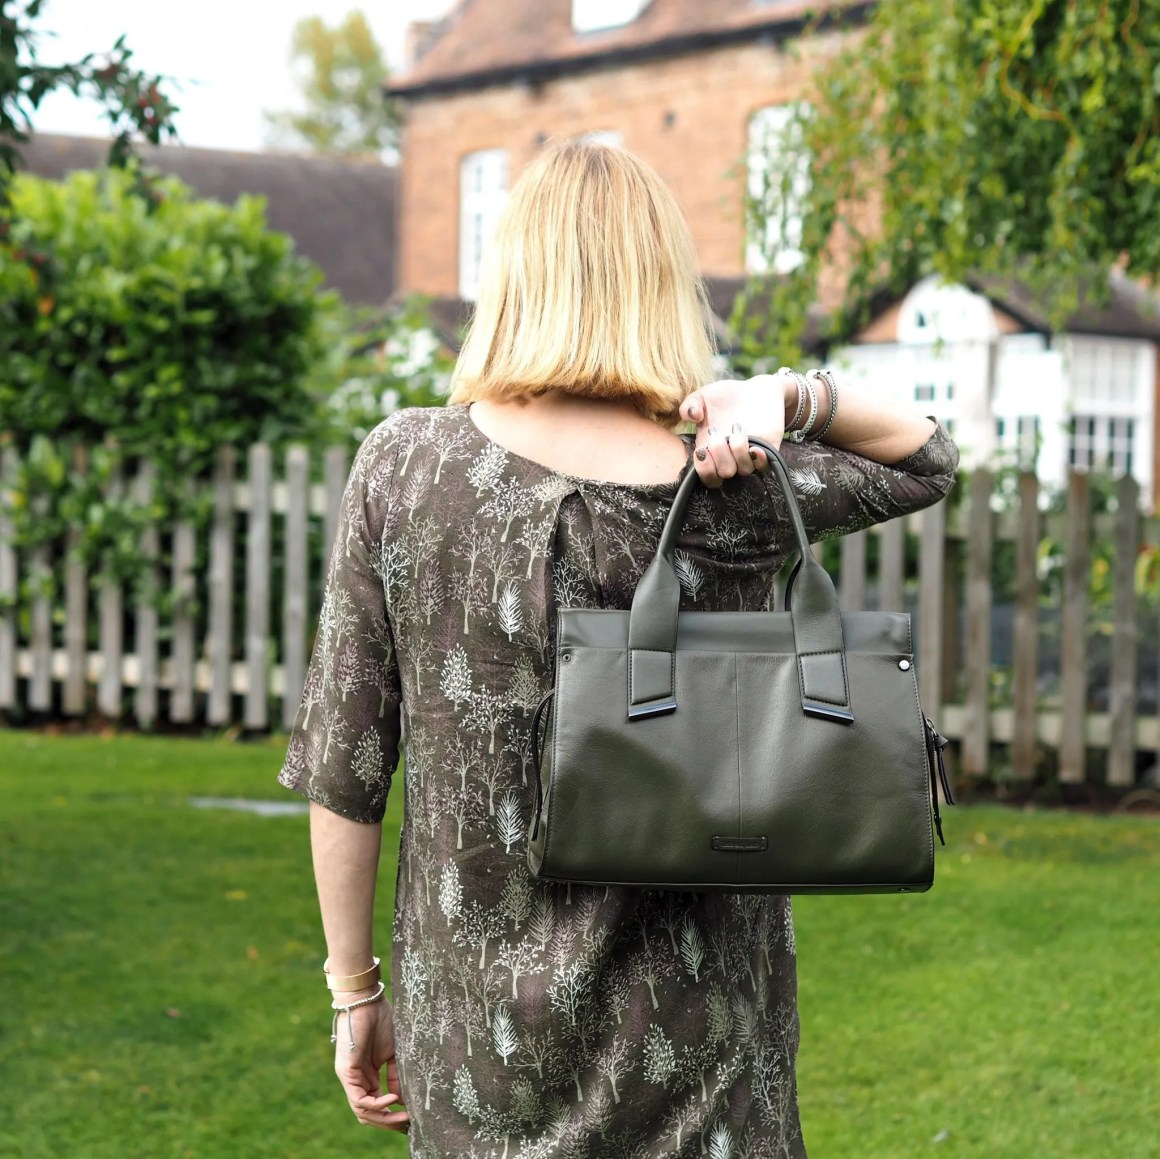 what-lizzy-loves-khaki-tunic-dress-autumn-style-leather-handbag